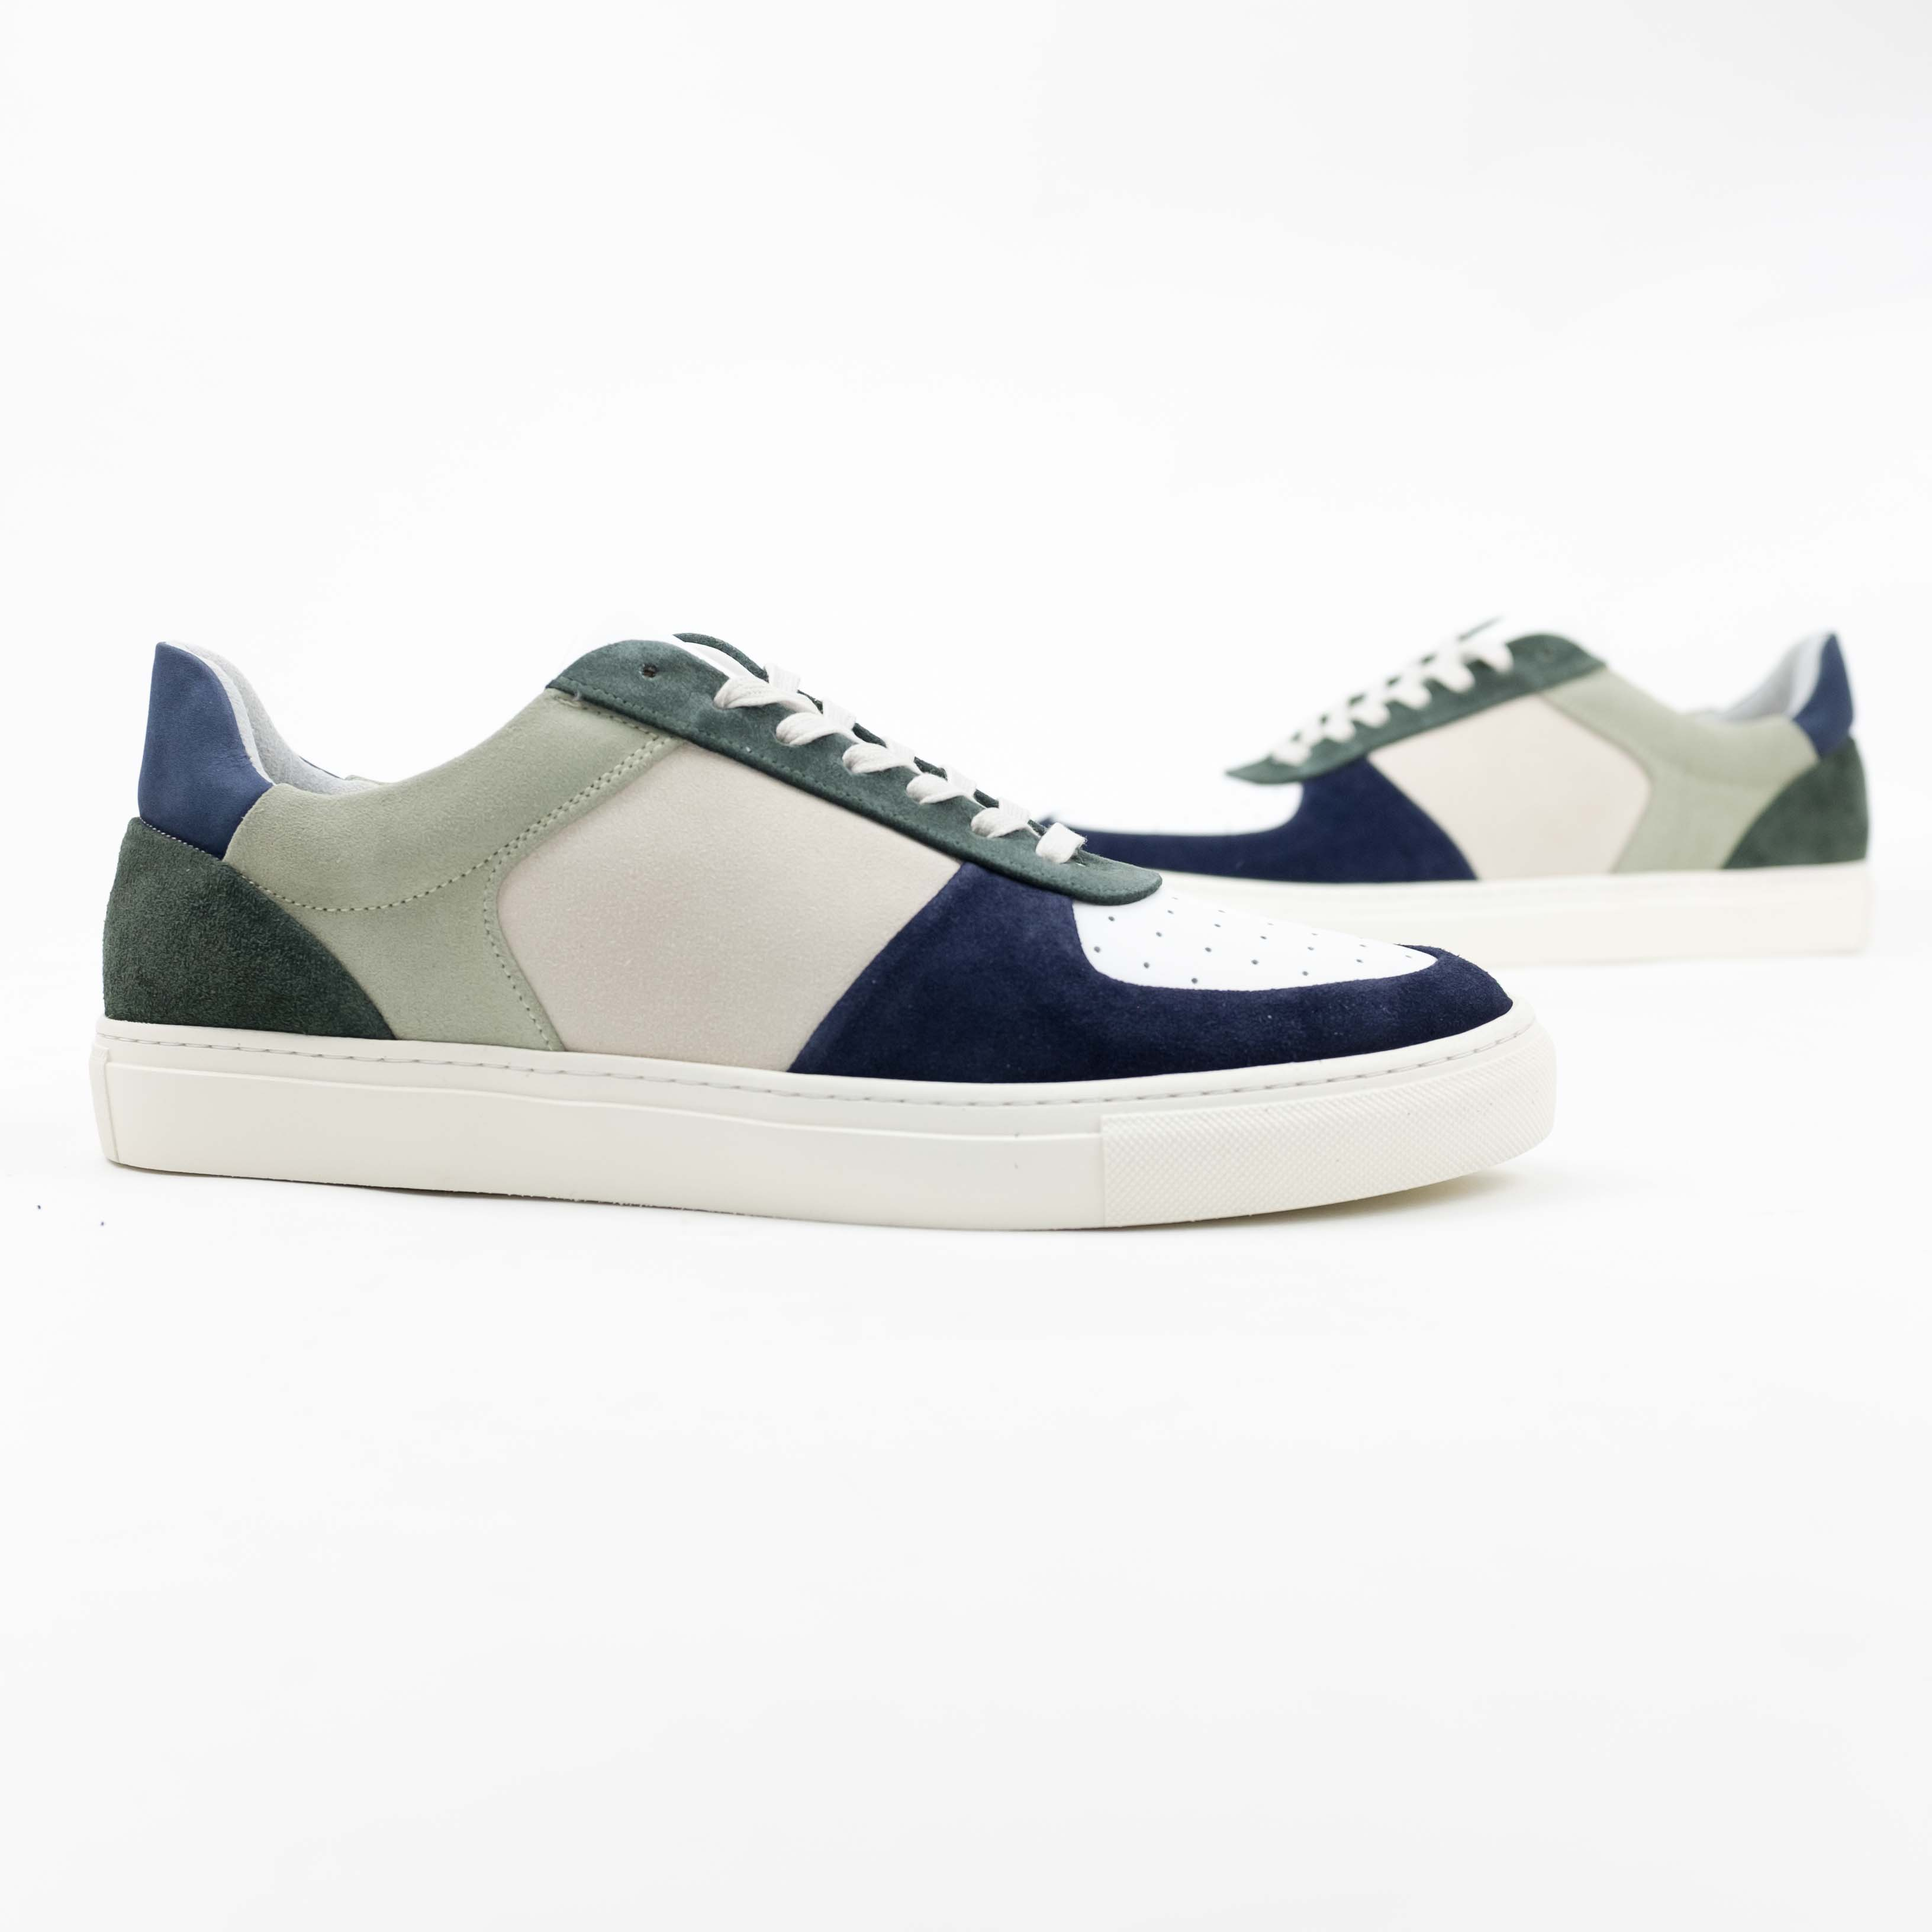 FILIPPA K SNEAKERS - EASY TO MATCH